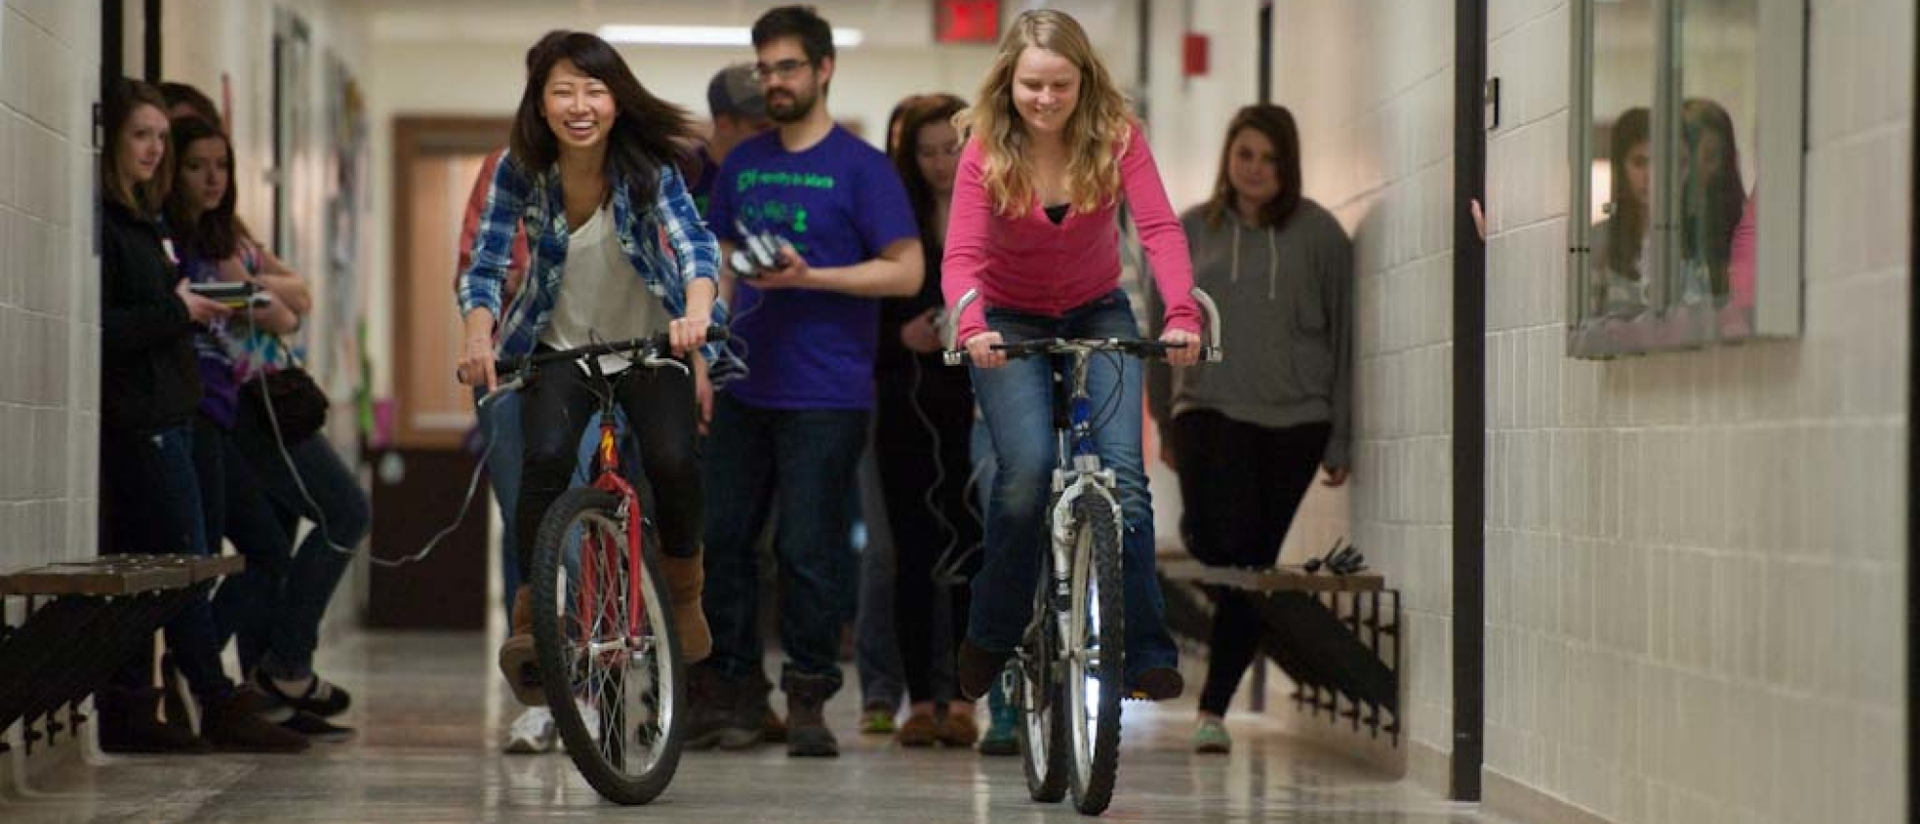 Students riding on bikes for math day